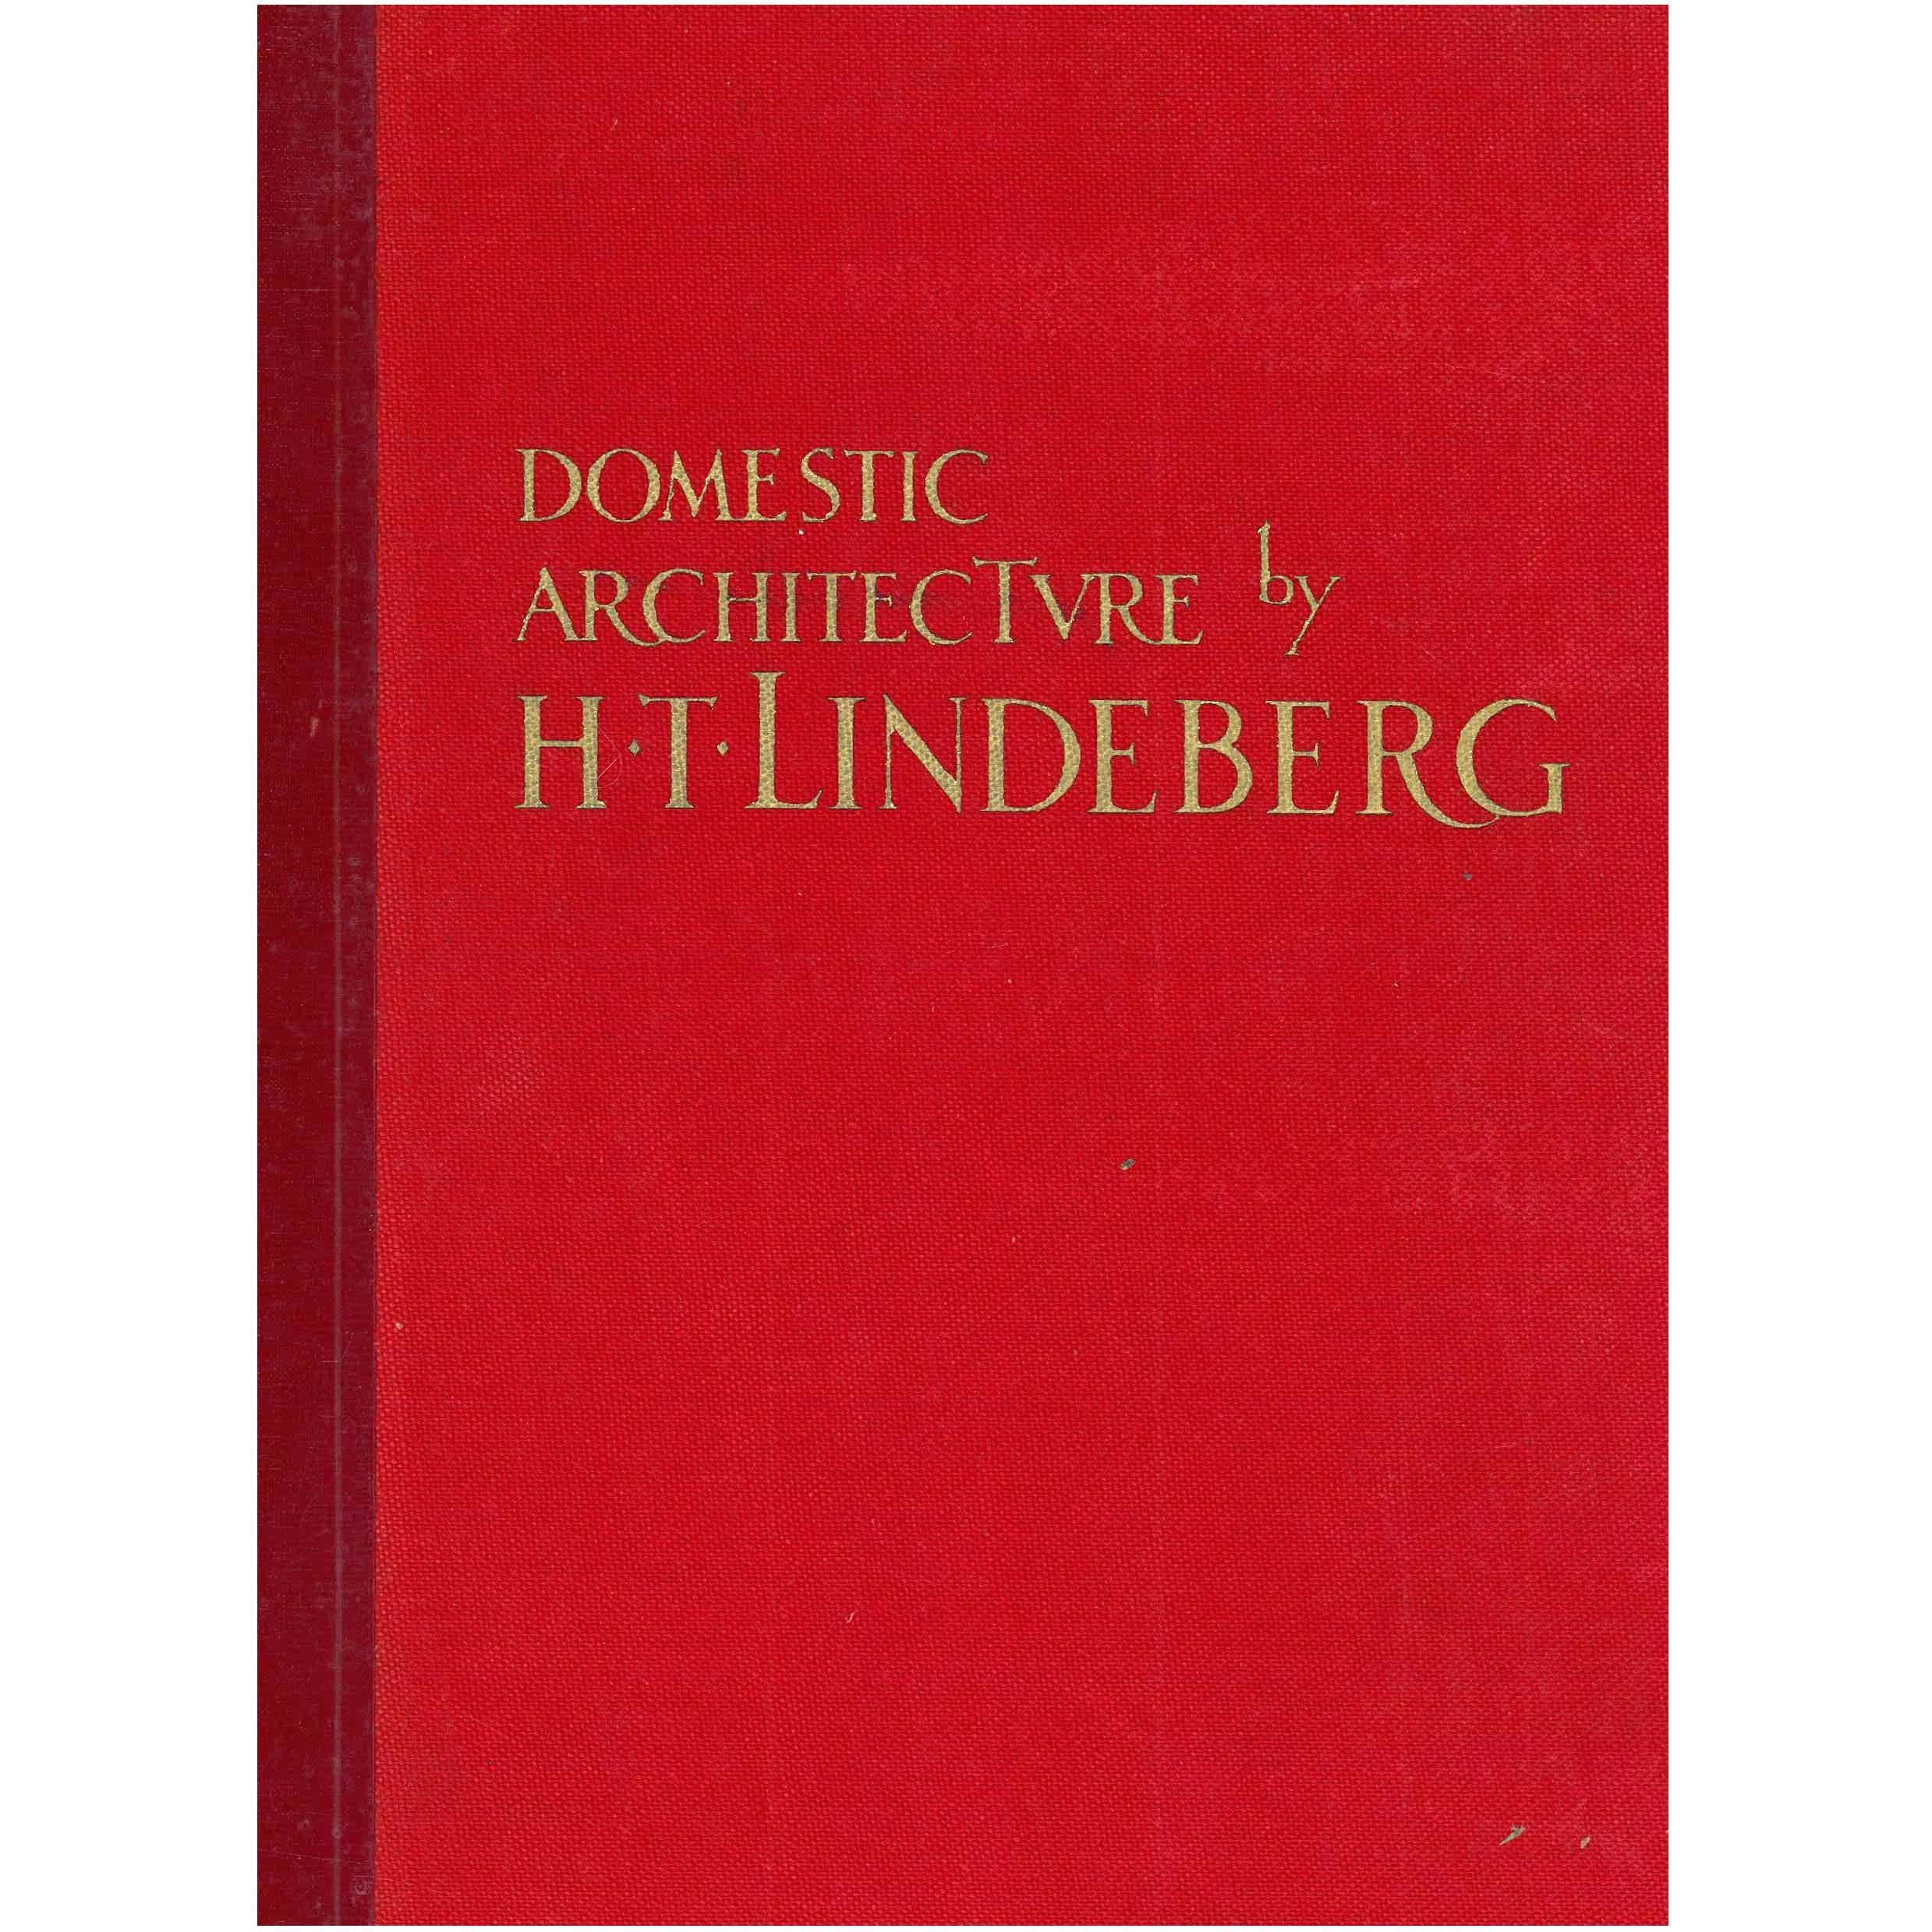 """""""DOMESTIC ARCHITECTURE by H.T. LINDEBERG'' Book"""